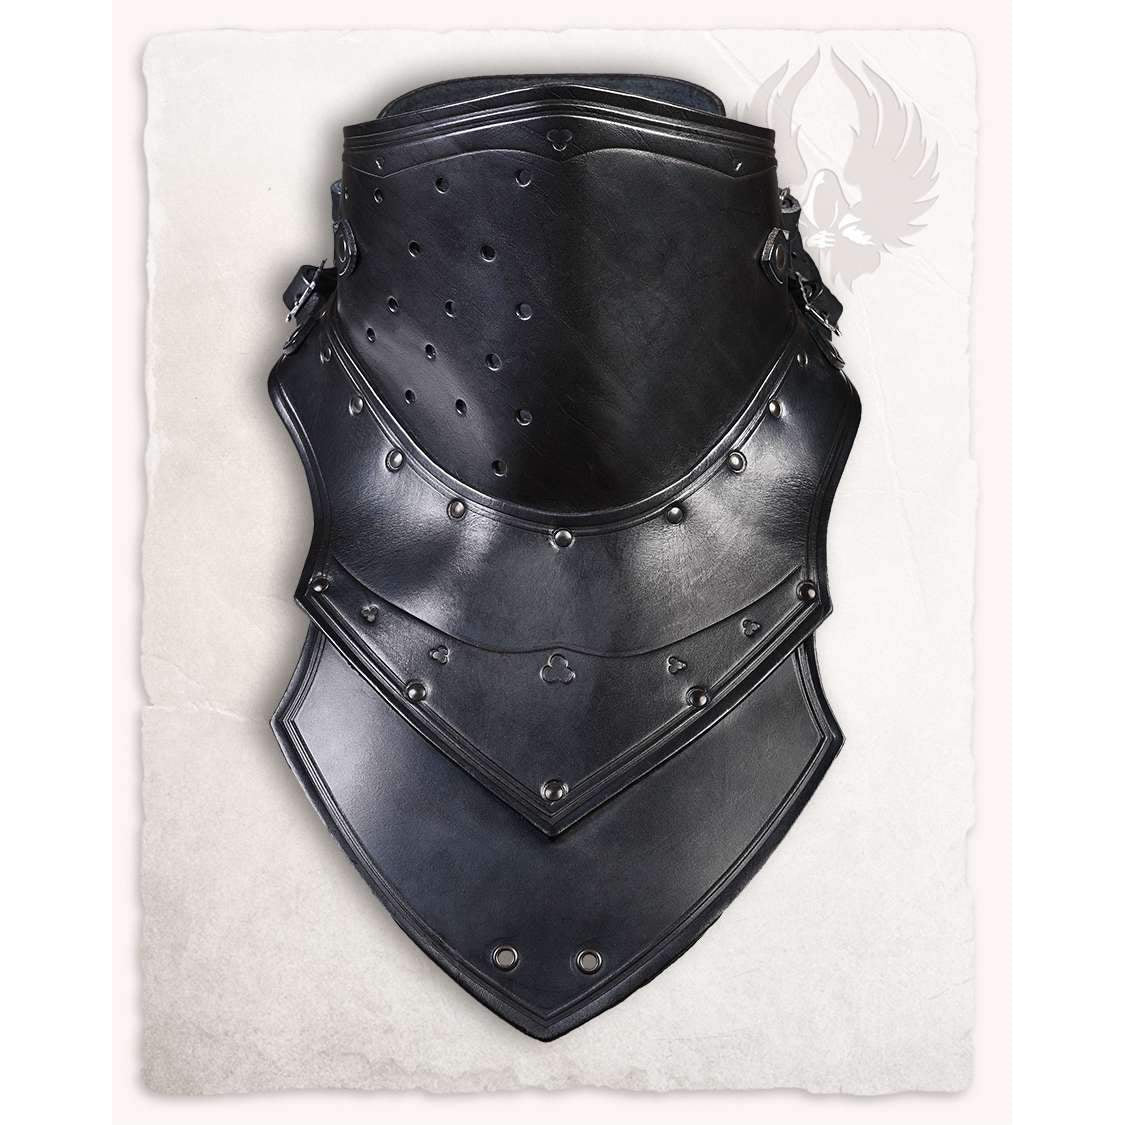 Luthor gorget 2ND ED.